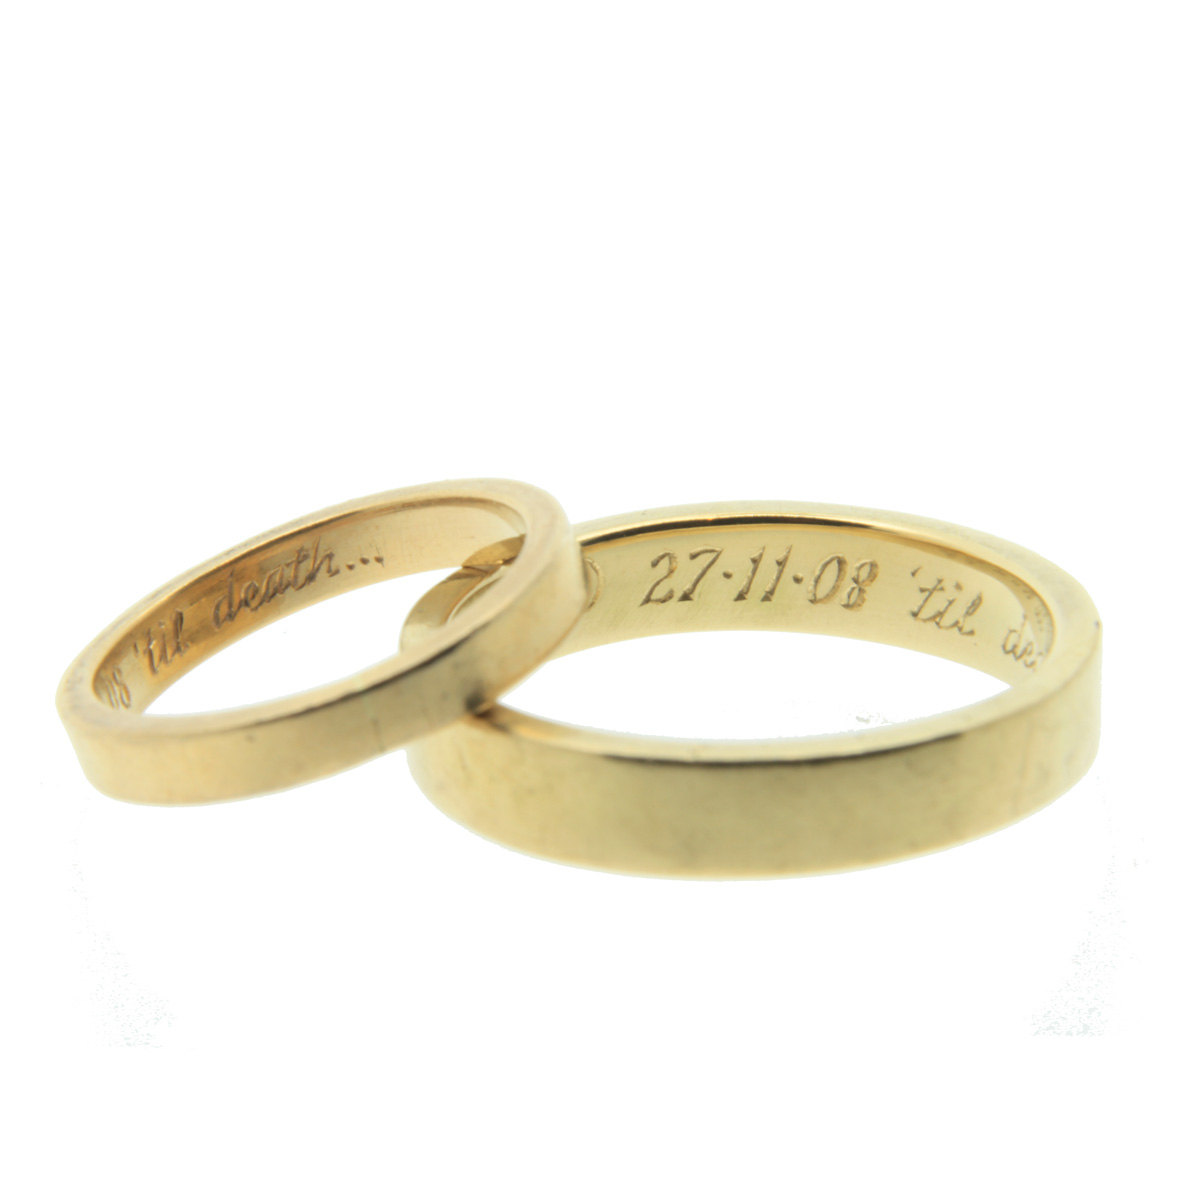 wedding ring inscriptions bernit bridal